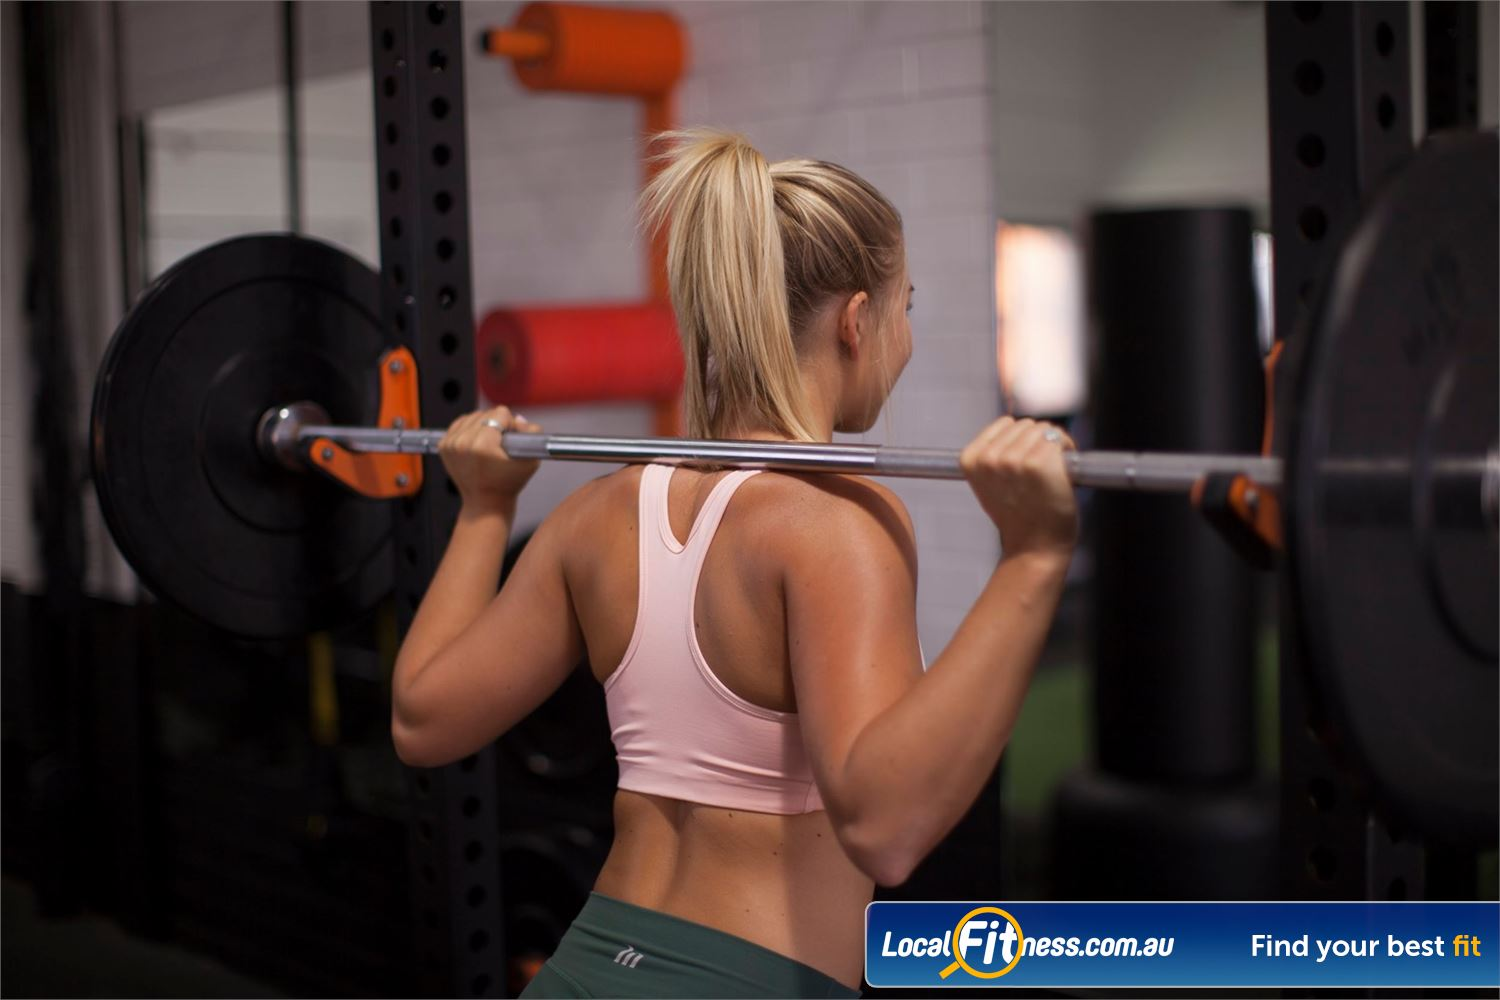 The Body Factory Near Port Hacking High-performance strength cages perfect forwomen strength training.